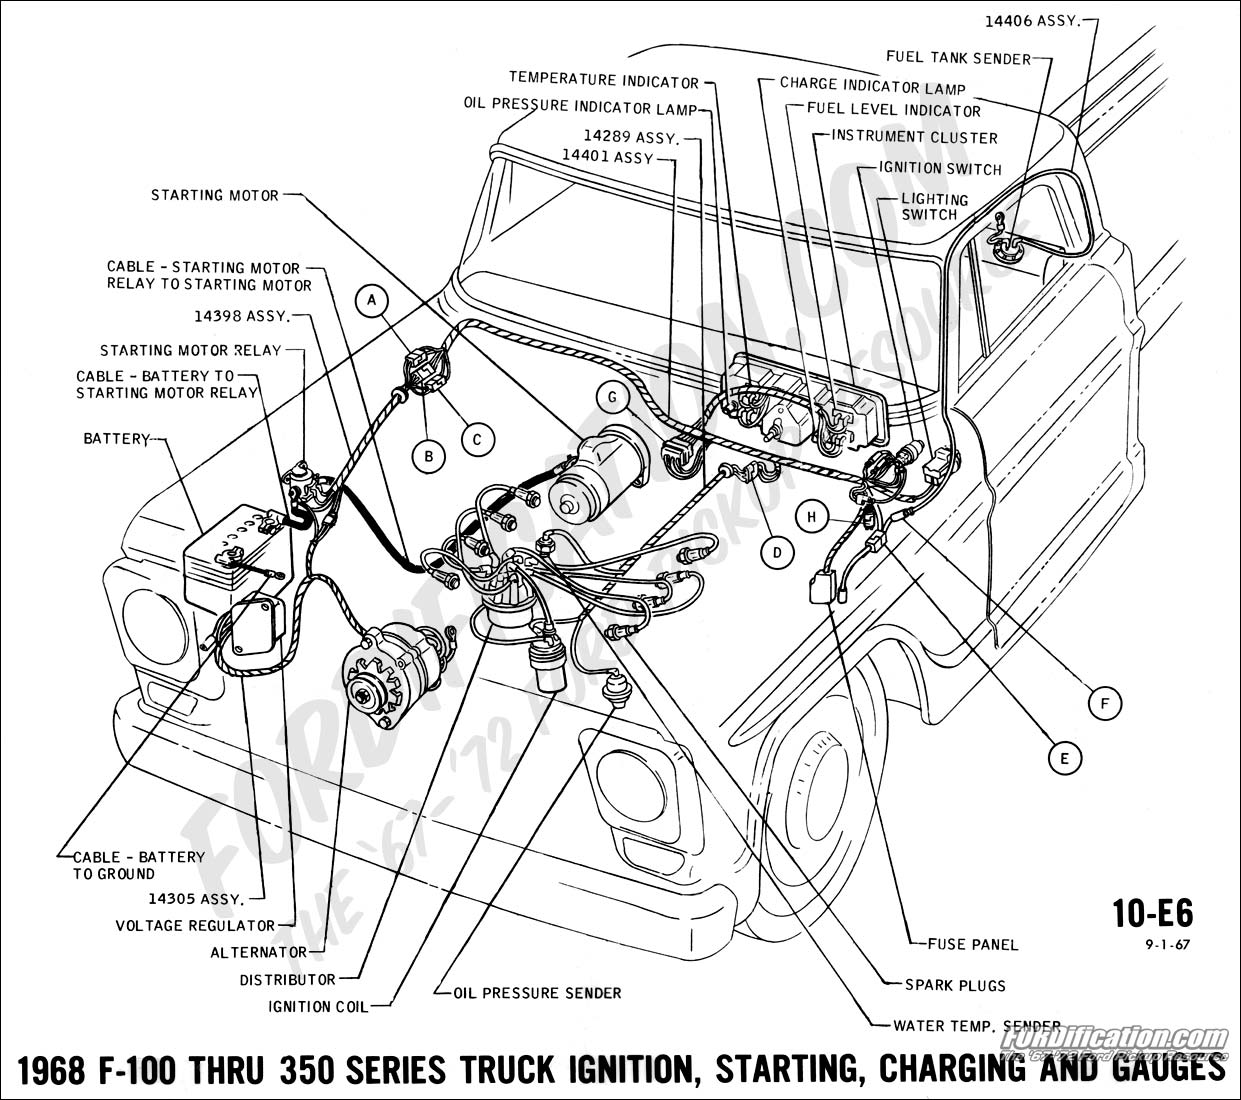 Ford Truck Wiring Harness - Wiring Diagrams on 1968 ford truck parts, 1968 ford truck cab mount, pickup truck diagram, 1968 ford truck brochure, 1968 ford truck radio, 1968 ford truck carburetor, truck parts diagram, ford truck engine diagram, 1968 ford truck wheels, 1968 ford truck wire schematic drawing, 1968 ford truck exhaust, 1968 ford truck shop manual, 1968 ford truck transmission, ford truck rear brake diagram, 93 ford relay diagram, 1968 ford truck air cleaner,